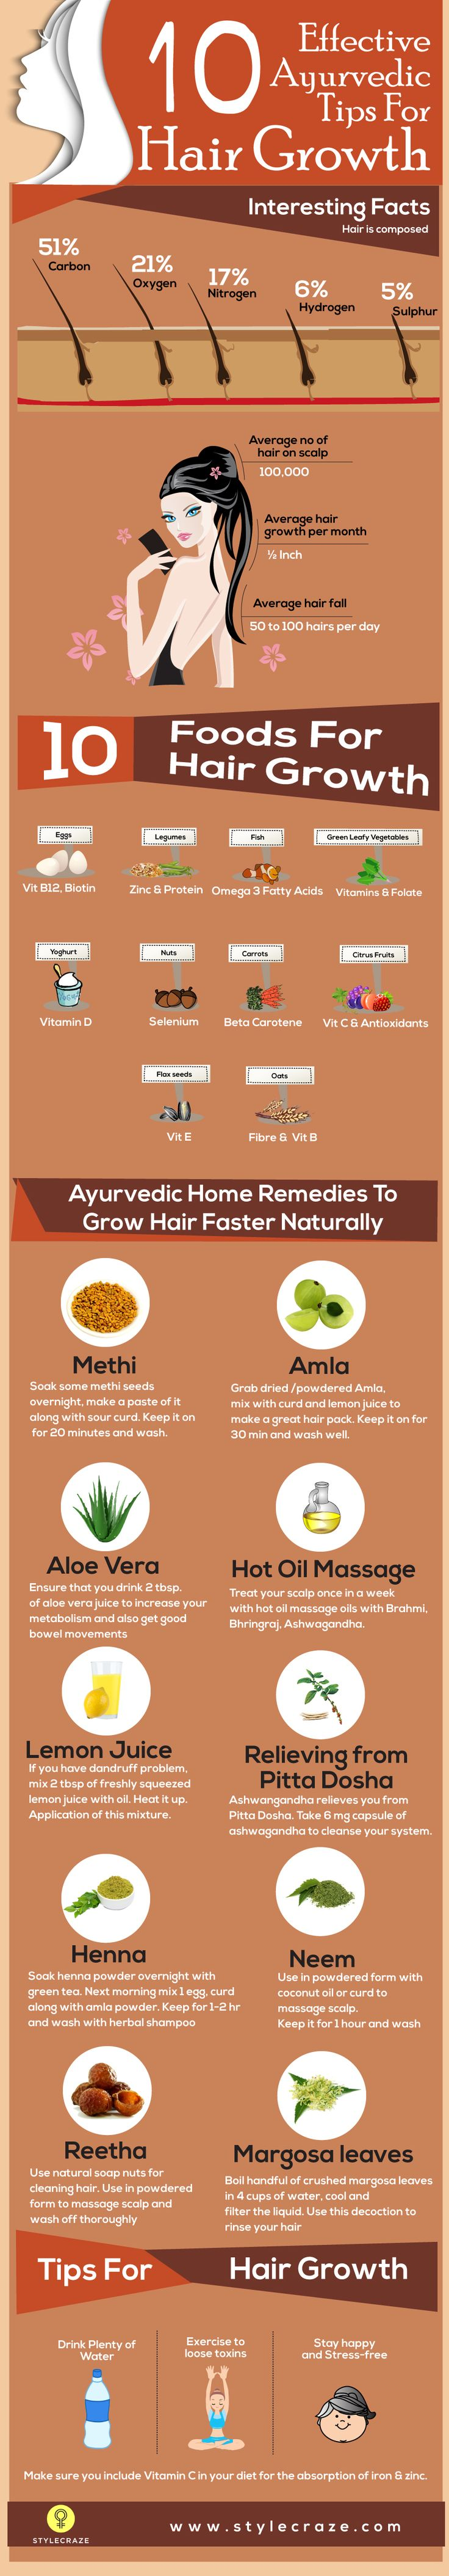 Discover new TIPS! Discover new TIPS! Published by: StyleCraze Original source: here TIPS FOR: beauty, hair, health, personal care and style